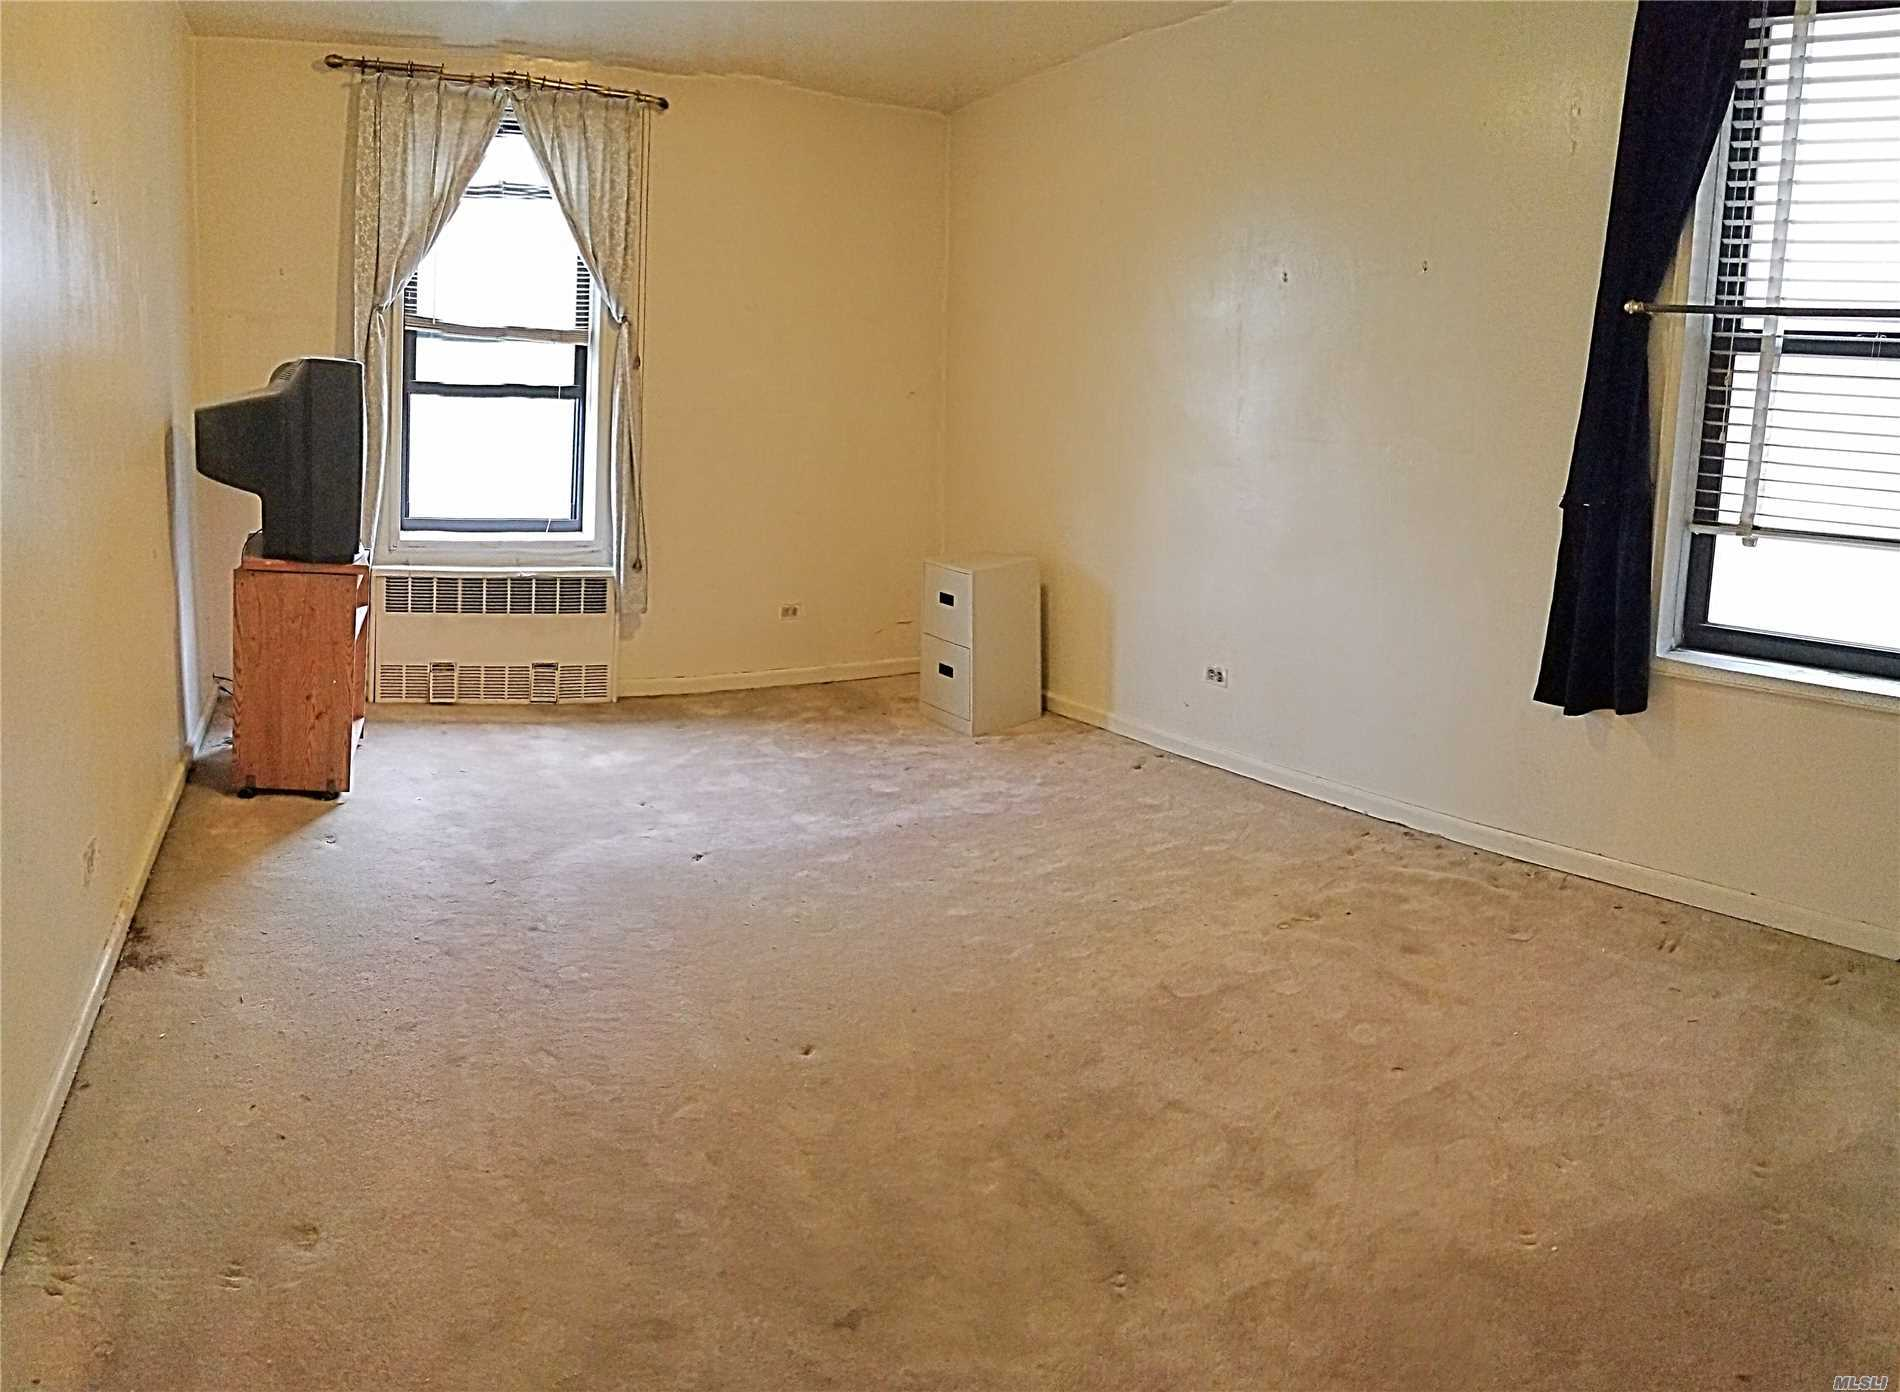 This Cooperative Apartment Offers 3.5 Rooms. Perfect Layout Nice Size One Bedroom, Living Room, Eat In Kitchen, Bathroom, Foyer. Laundry On Site. Convenient Location Close To Transportation 7 Train And Buses. Easy Commute To Manhattan.